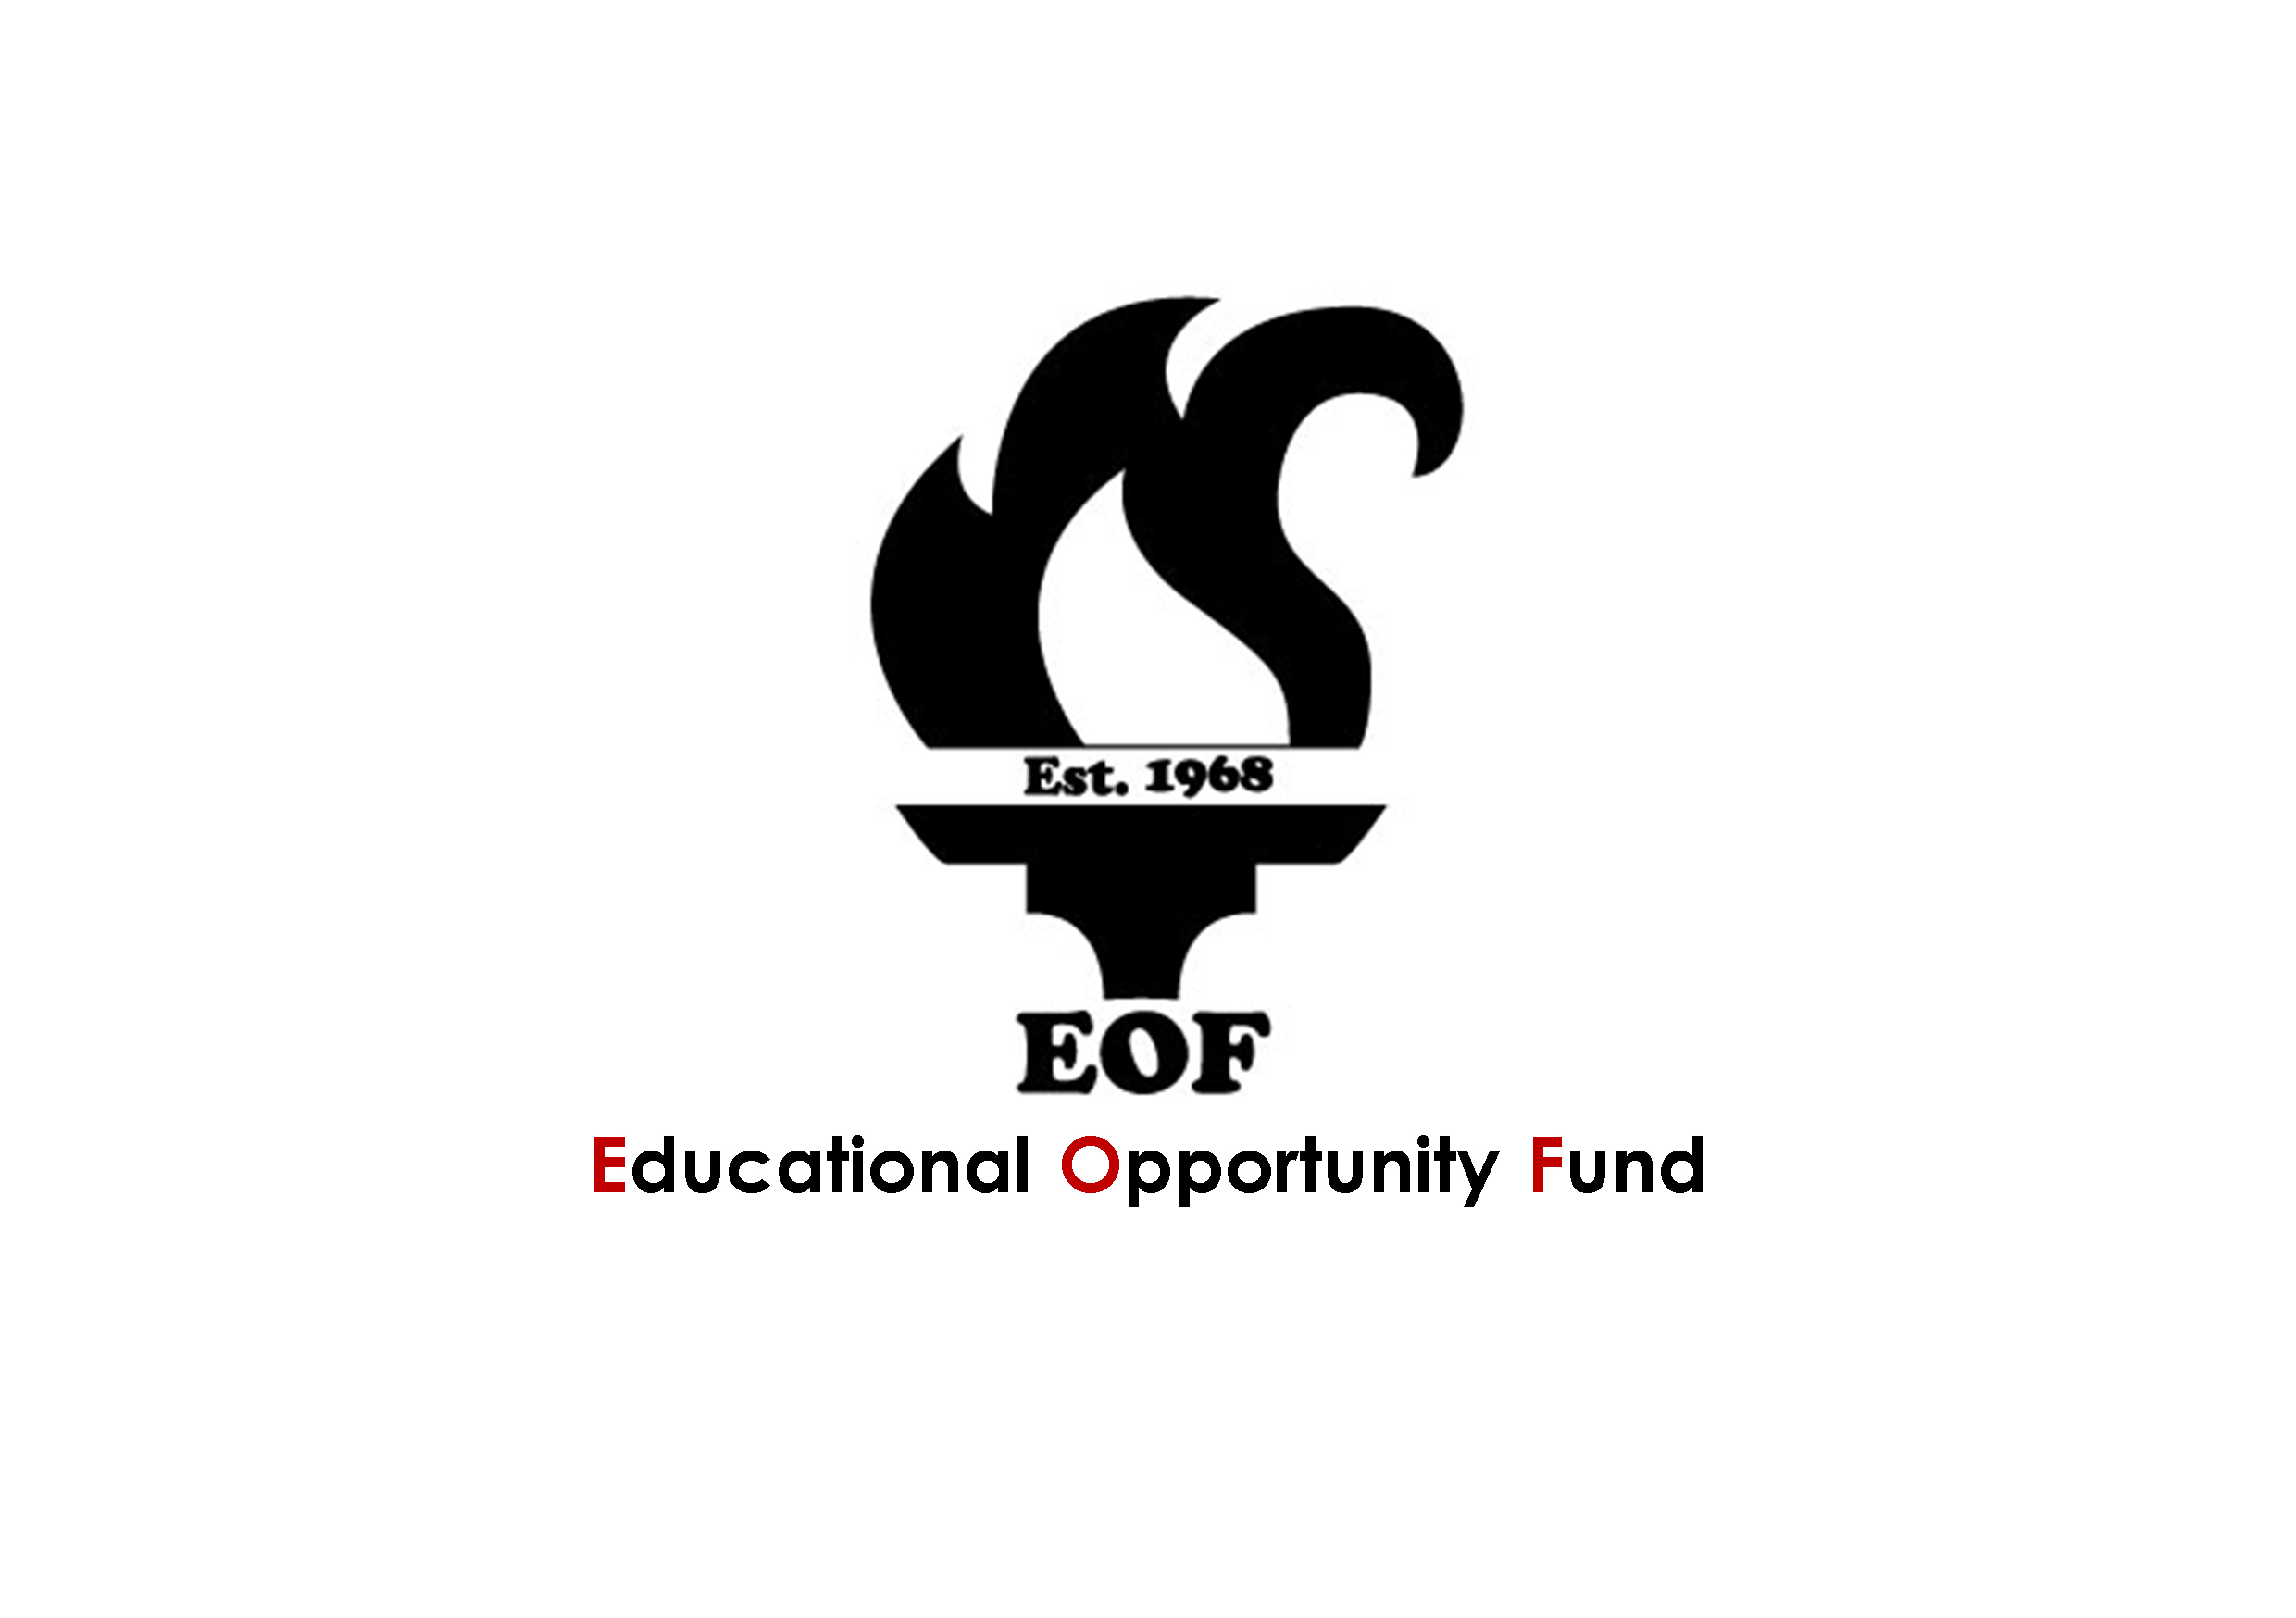 Educational Opportunity Fund